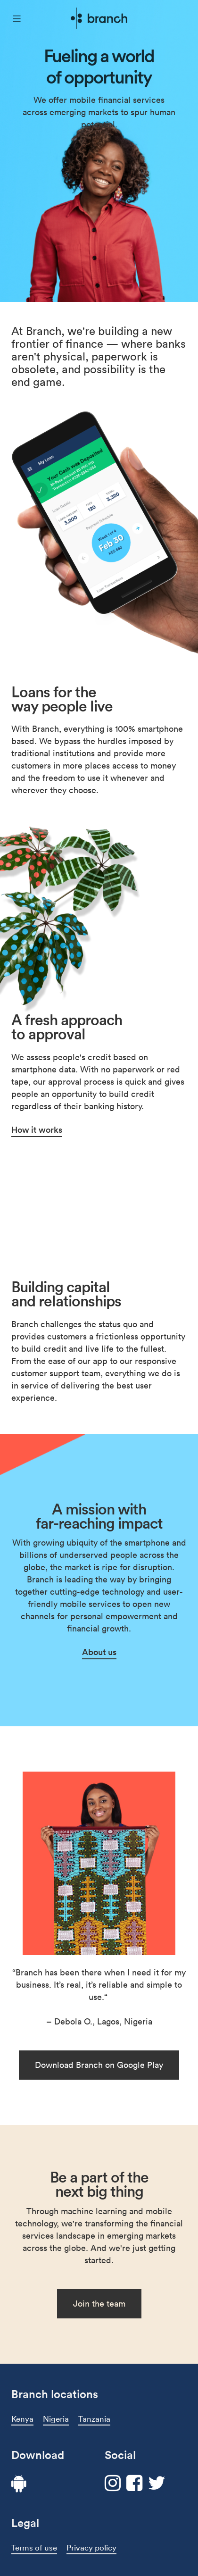 Example of Design for Finance, Banking, Mobile Landing Page by branch.co | Mobile Landing Page Design